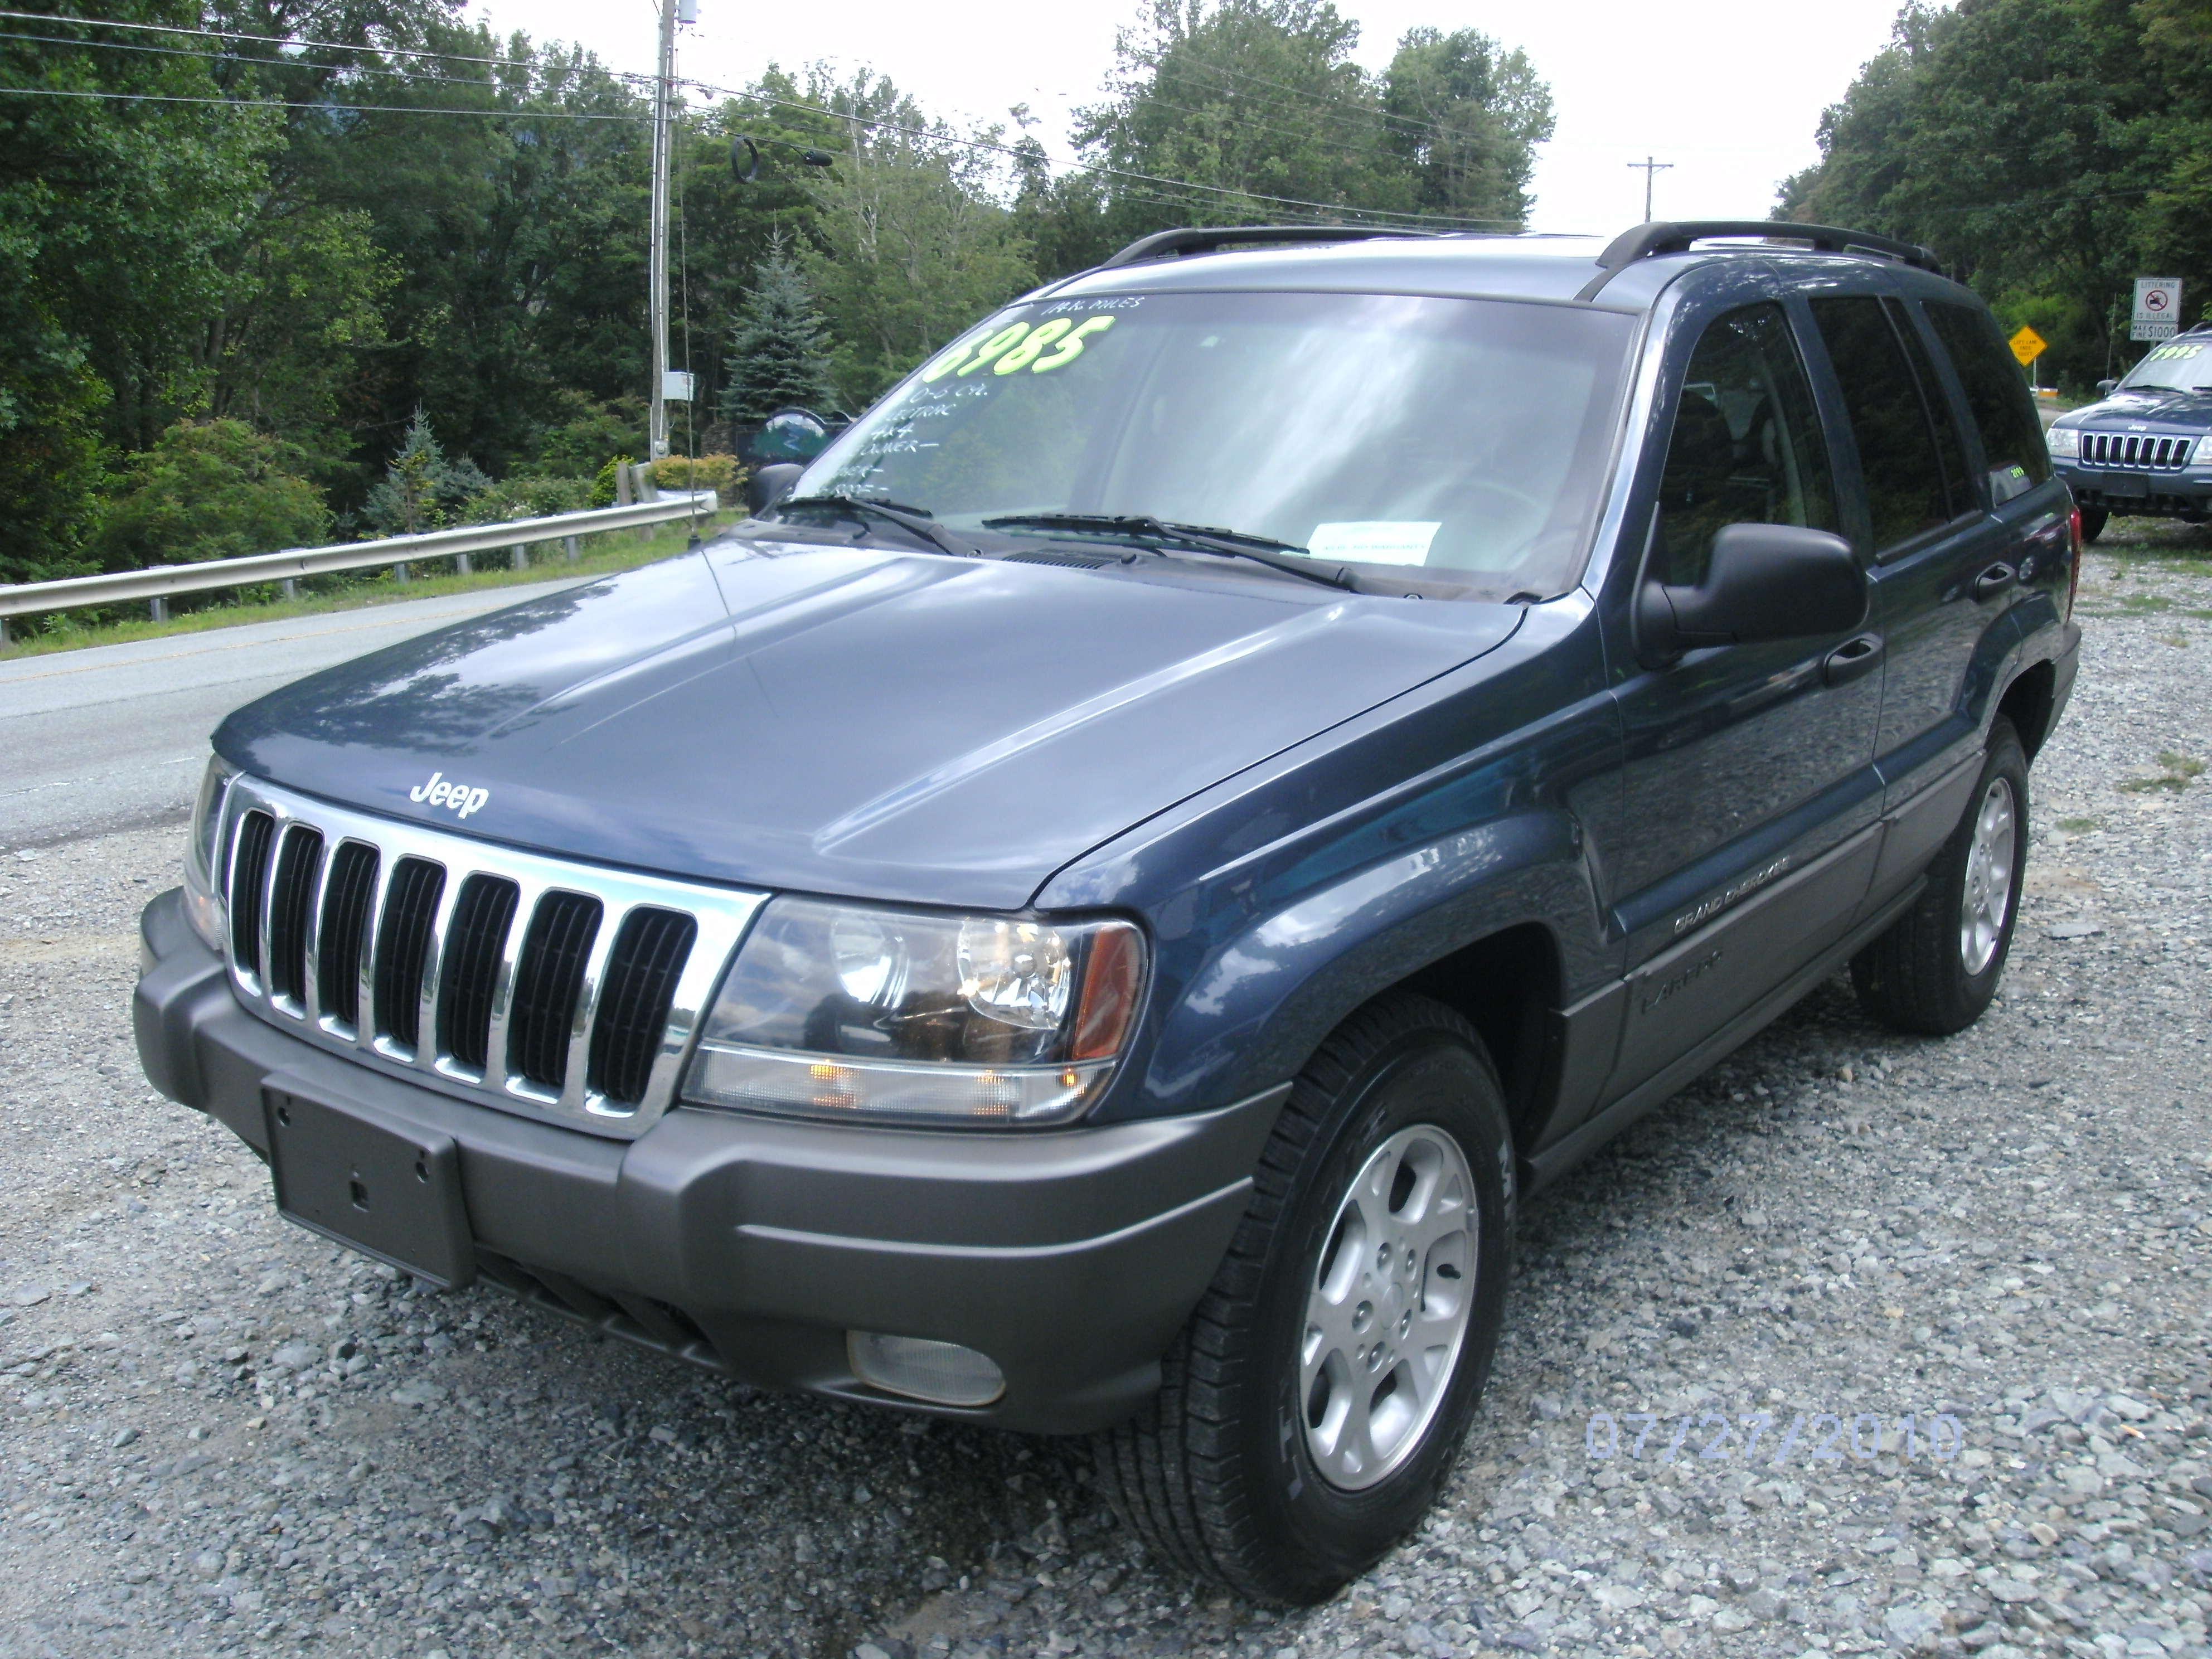 Joe's Used Cars - Cars, trucks, SUVs for sale in the High Country and ...